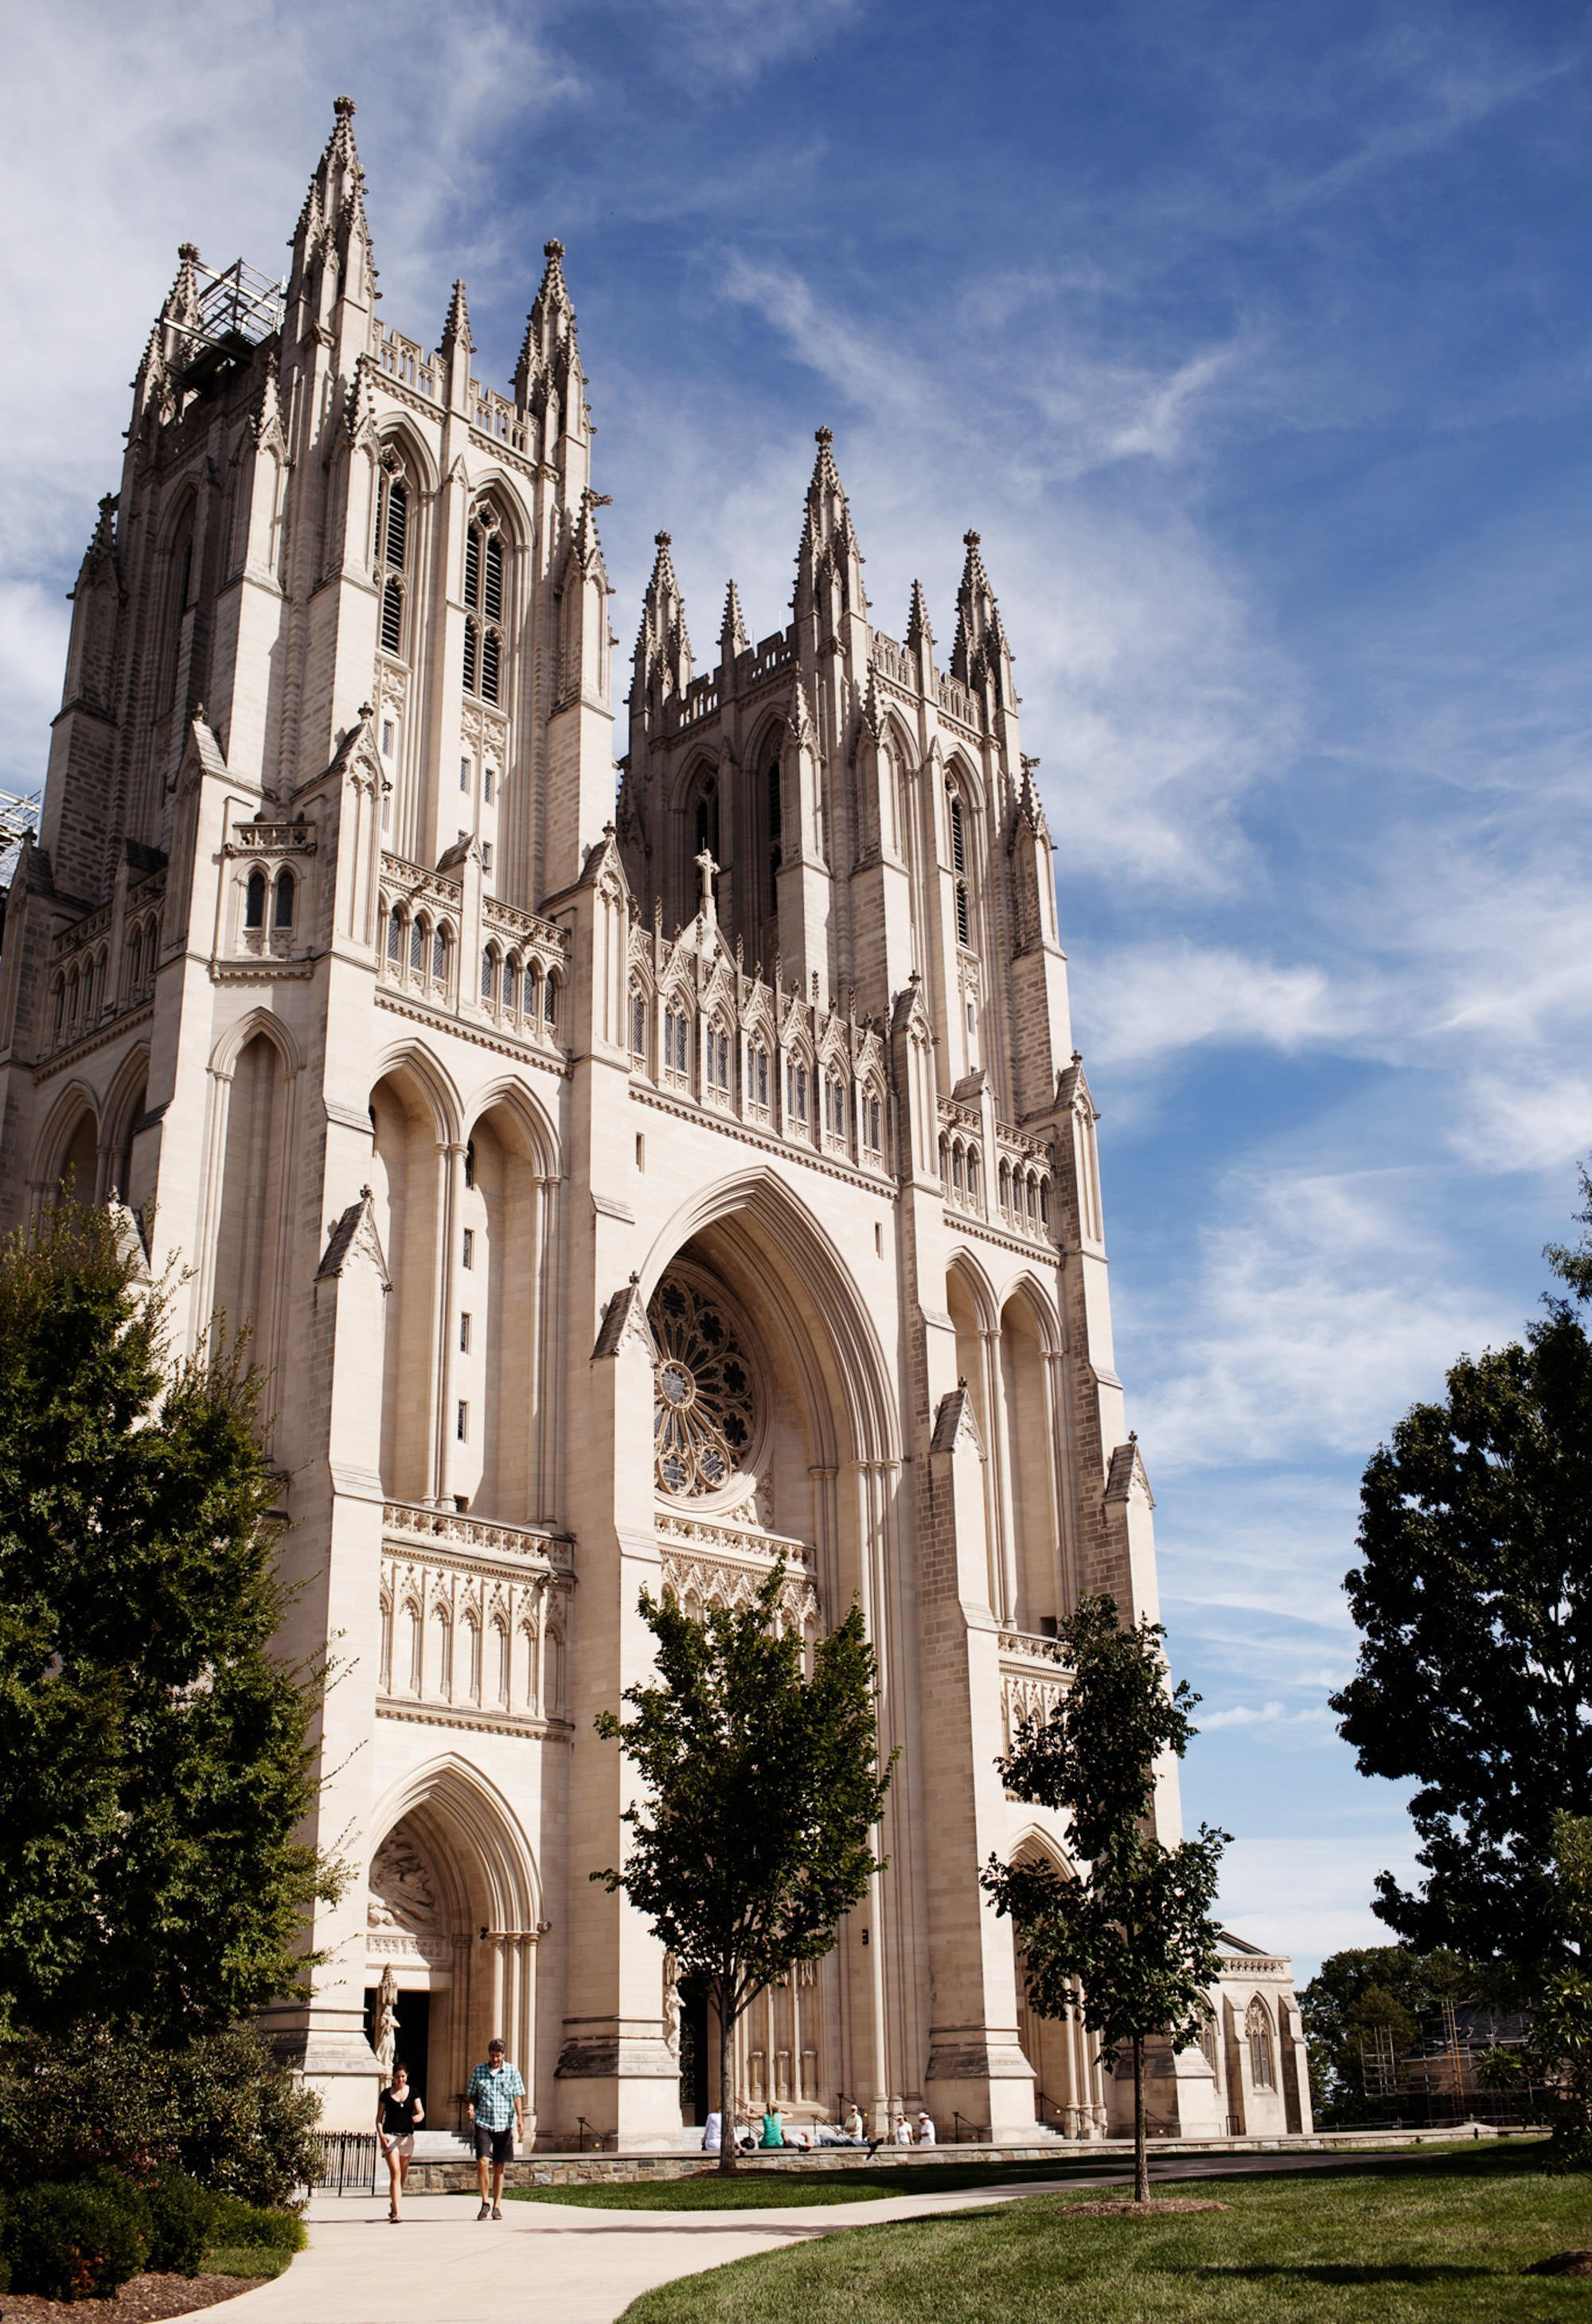 The Washington National Cathedral on the wedding day.